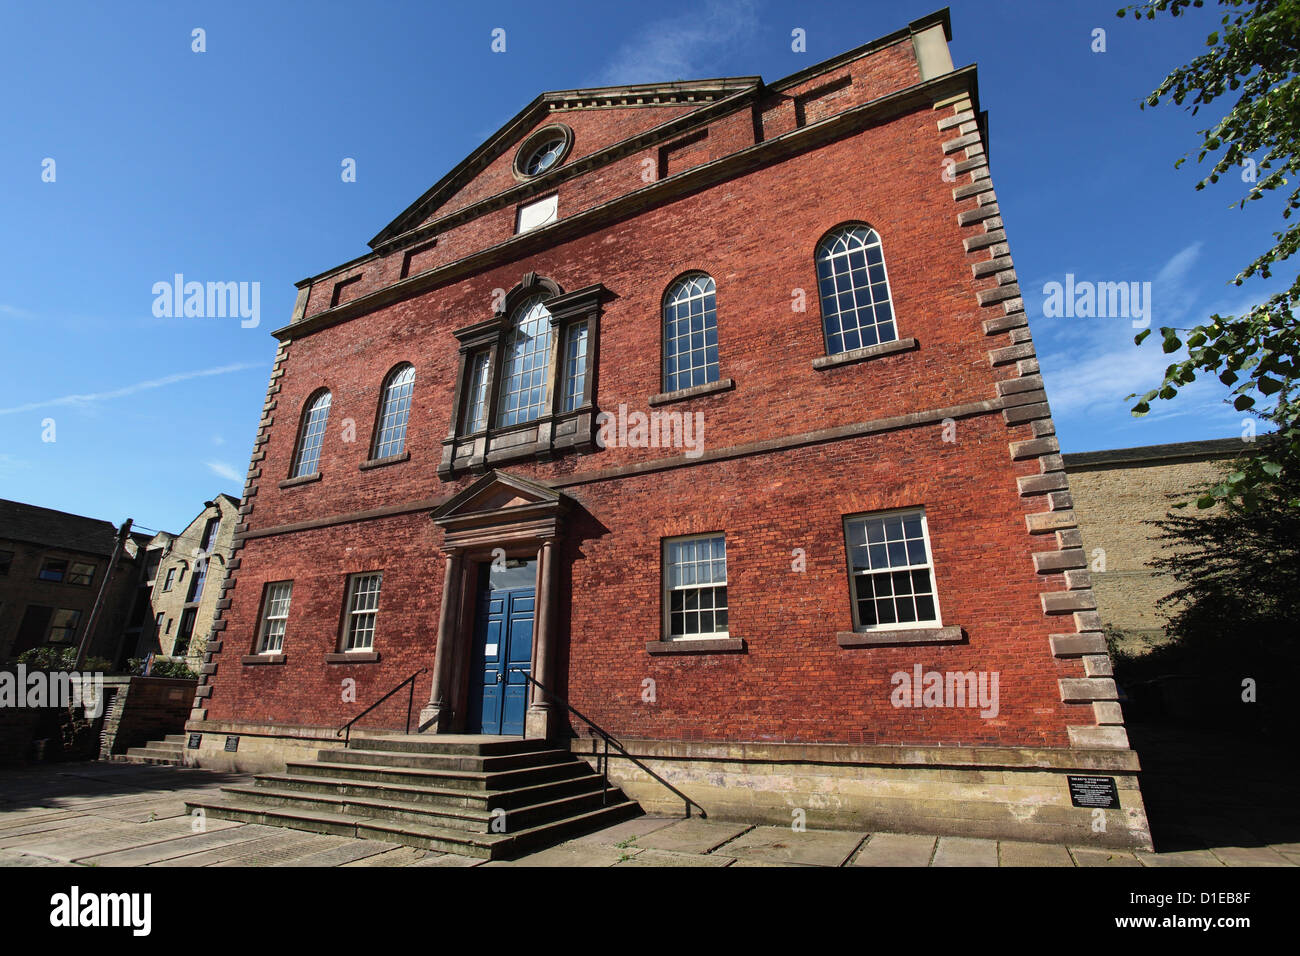 Square Chapel Centre for the Arts, brick built Georgian architecture, in Halifax, West Yorkshire, Yorkshire, England - Stock Image